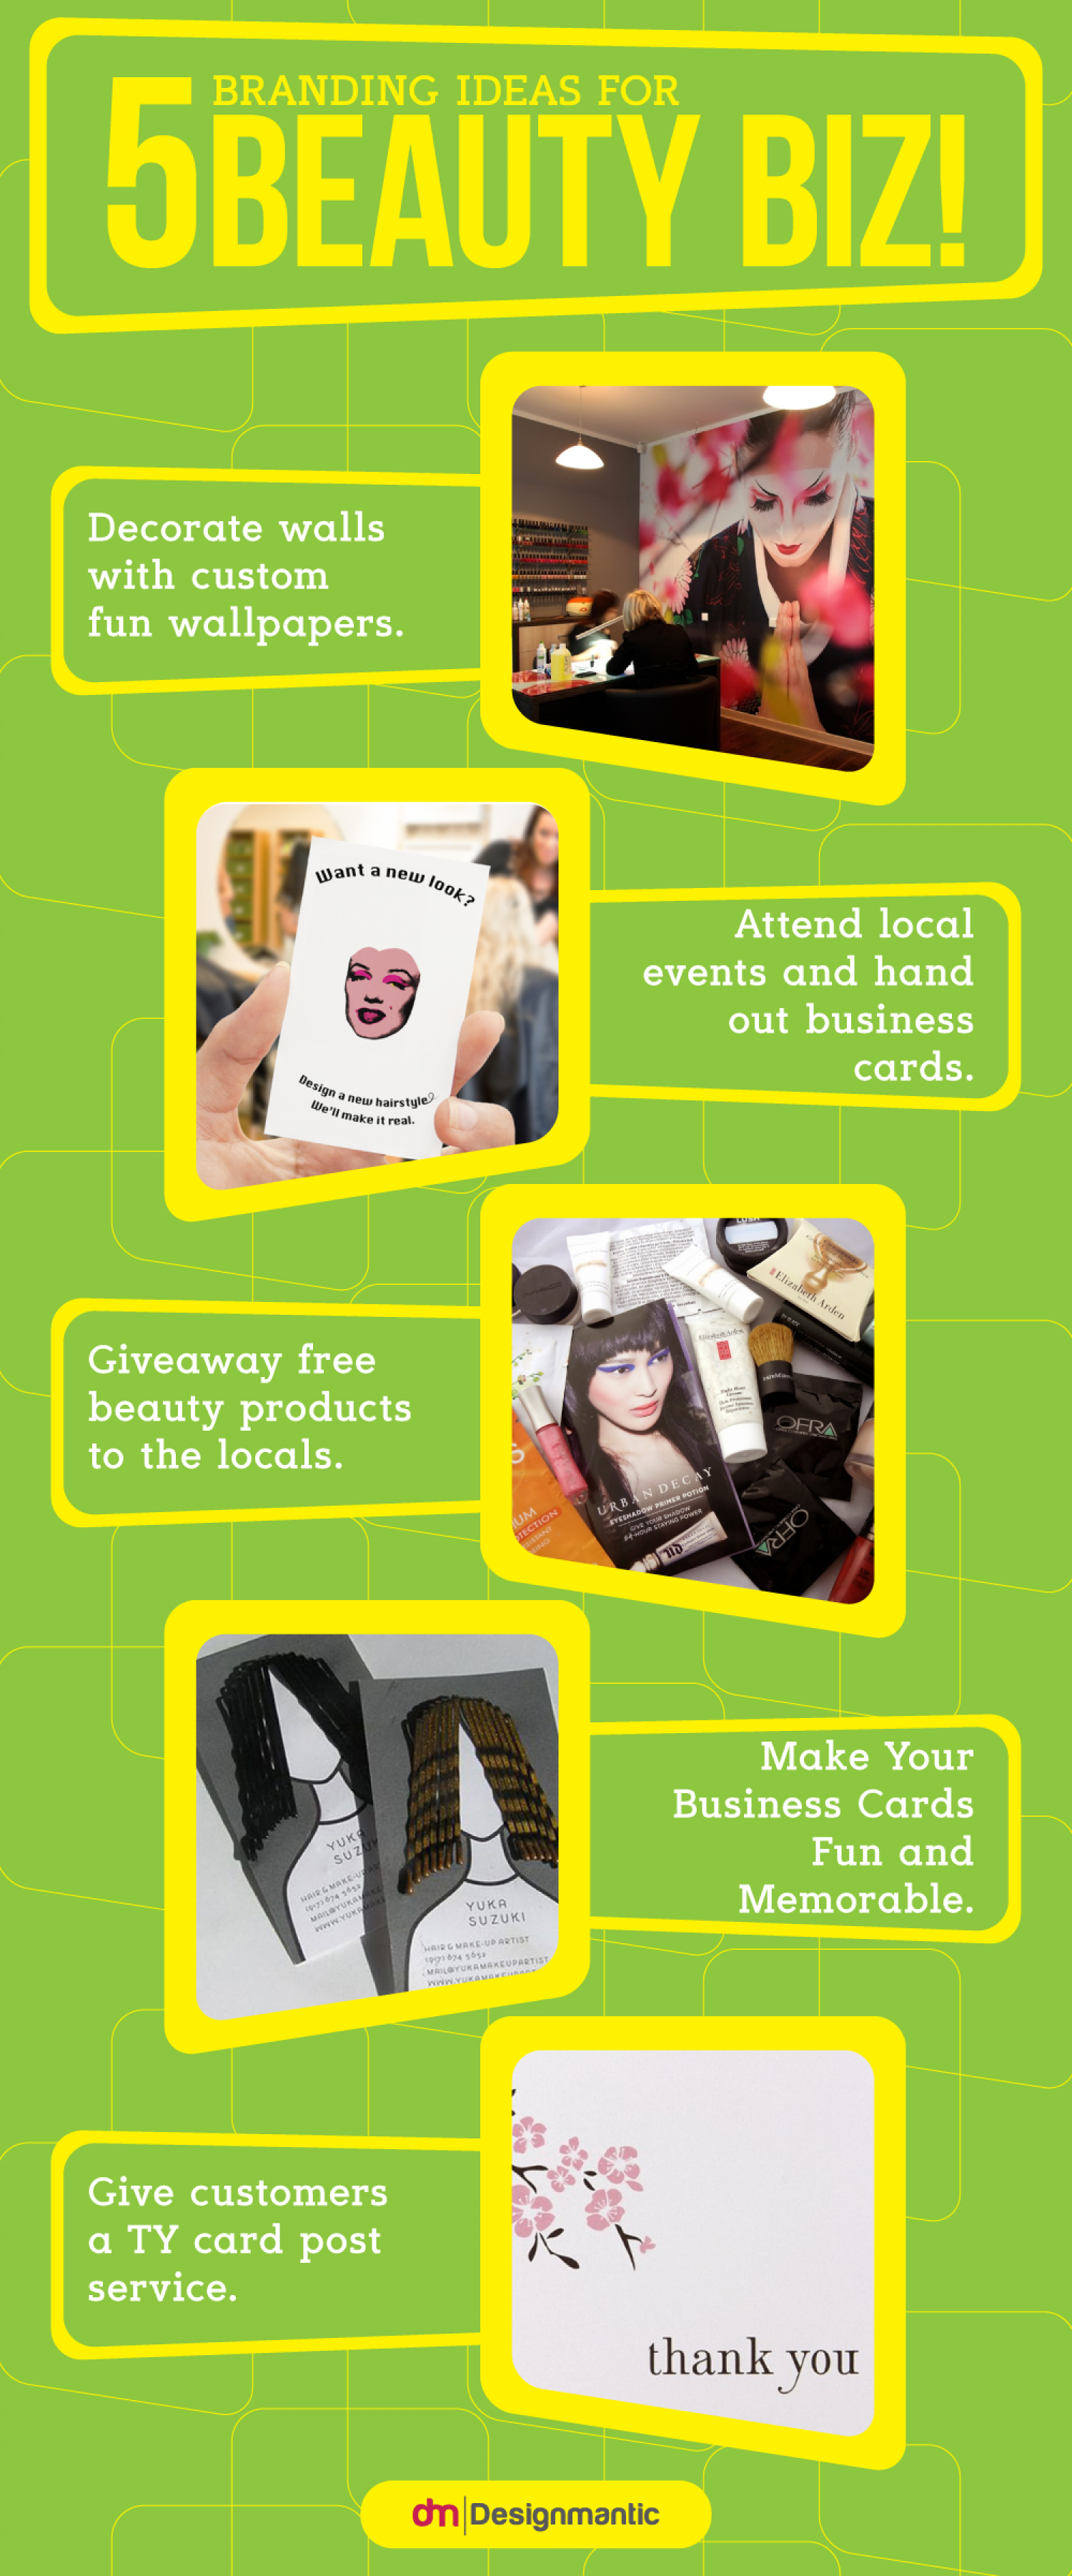 5 Branding Ideas For Beauty Biz! Infographic